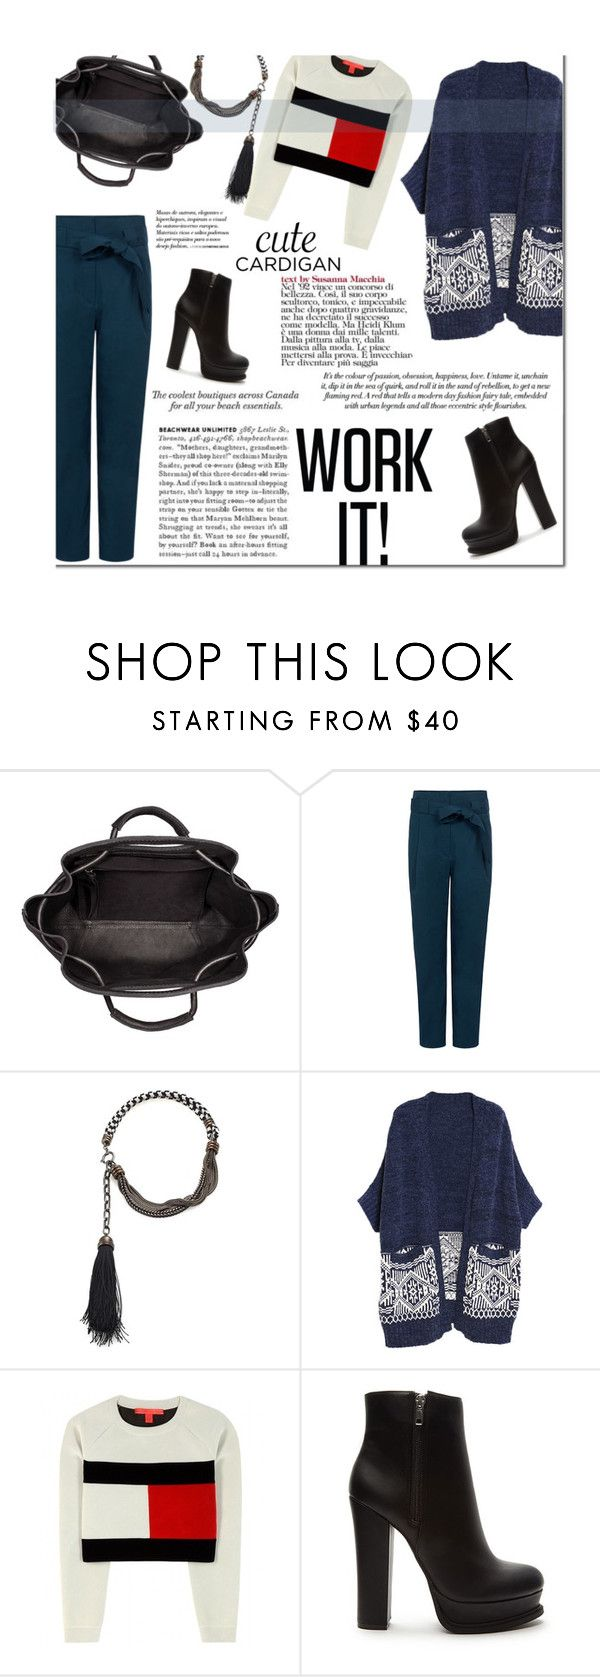 """""""#mycardi"""" by zoey-heart ❤ liked on Polyvore featuring Paul & Joe Sister, Lanvin, Tommy Hilfiger, Forever 21 and mycardi"""